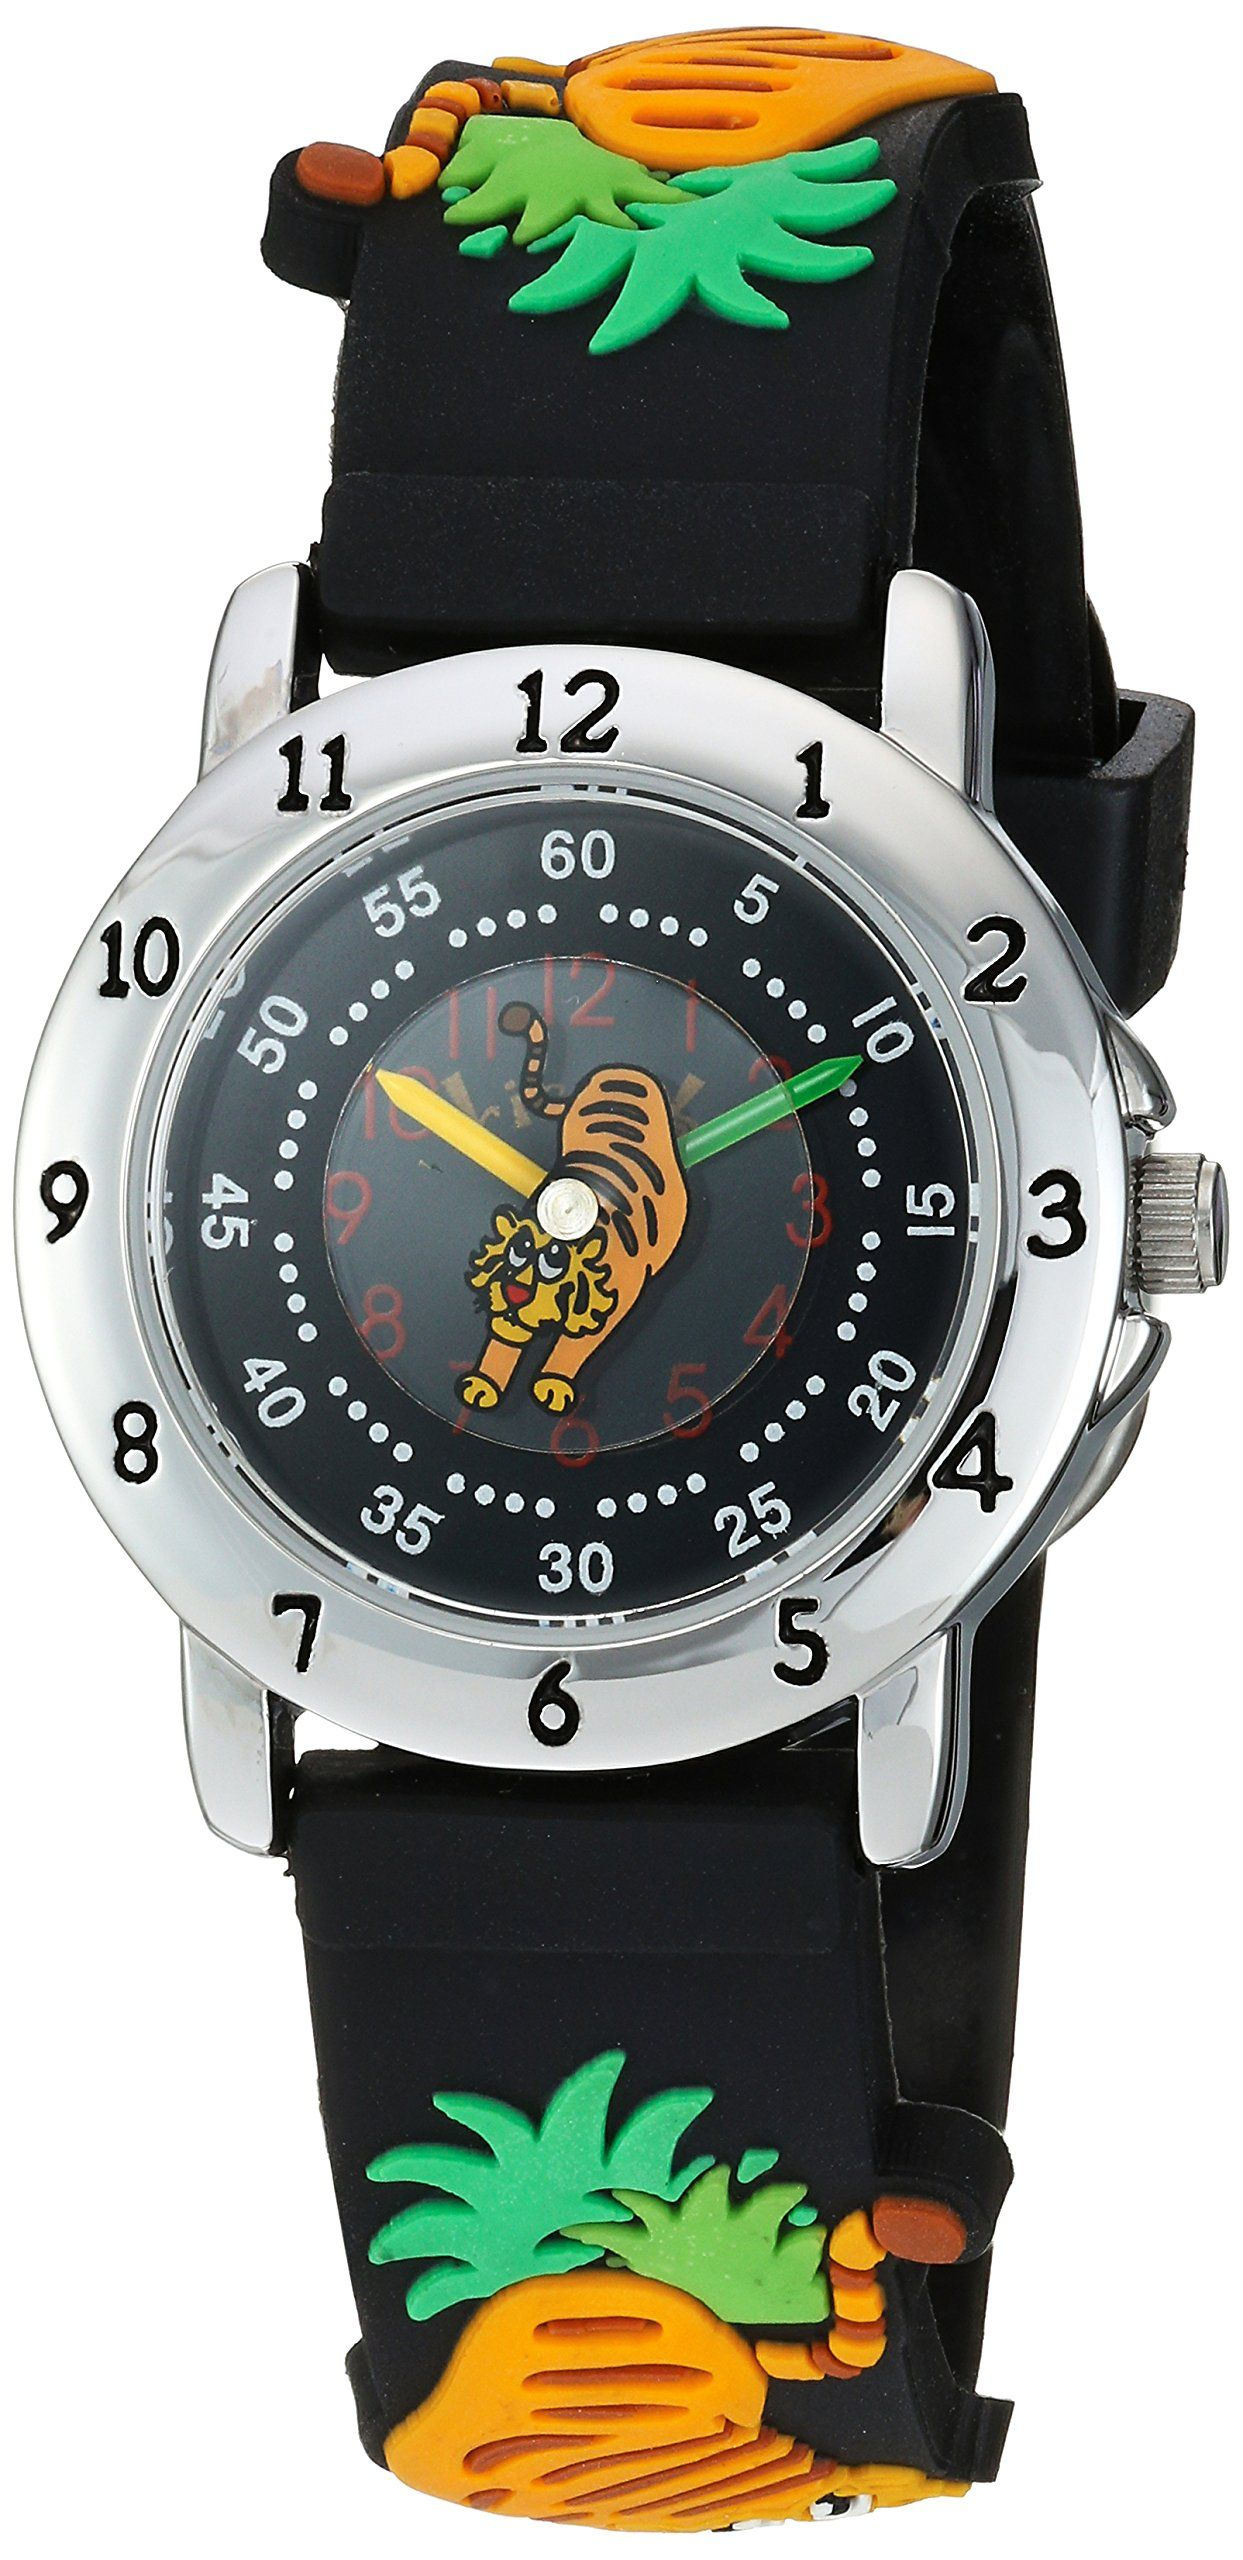 ricci b Quartz Stainless Steel and Plastic Watch, Color:Black (Model: 210). Jungle tigers. Unisex kids watch. Fun to wear kids watch. Time teacher. Fits most kids and many adults.